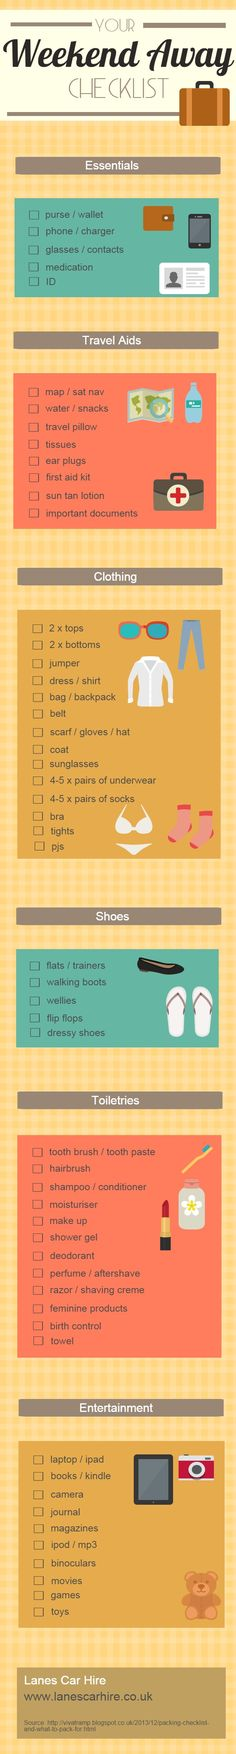 Your Weekend Away Checklist #infographic #Travel #CheckList